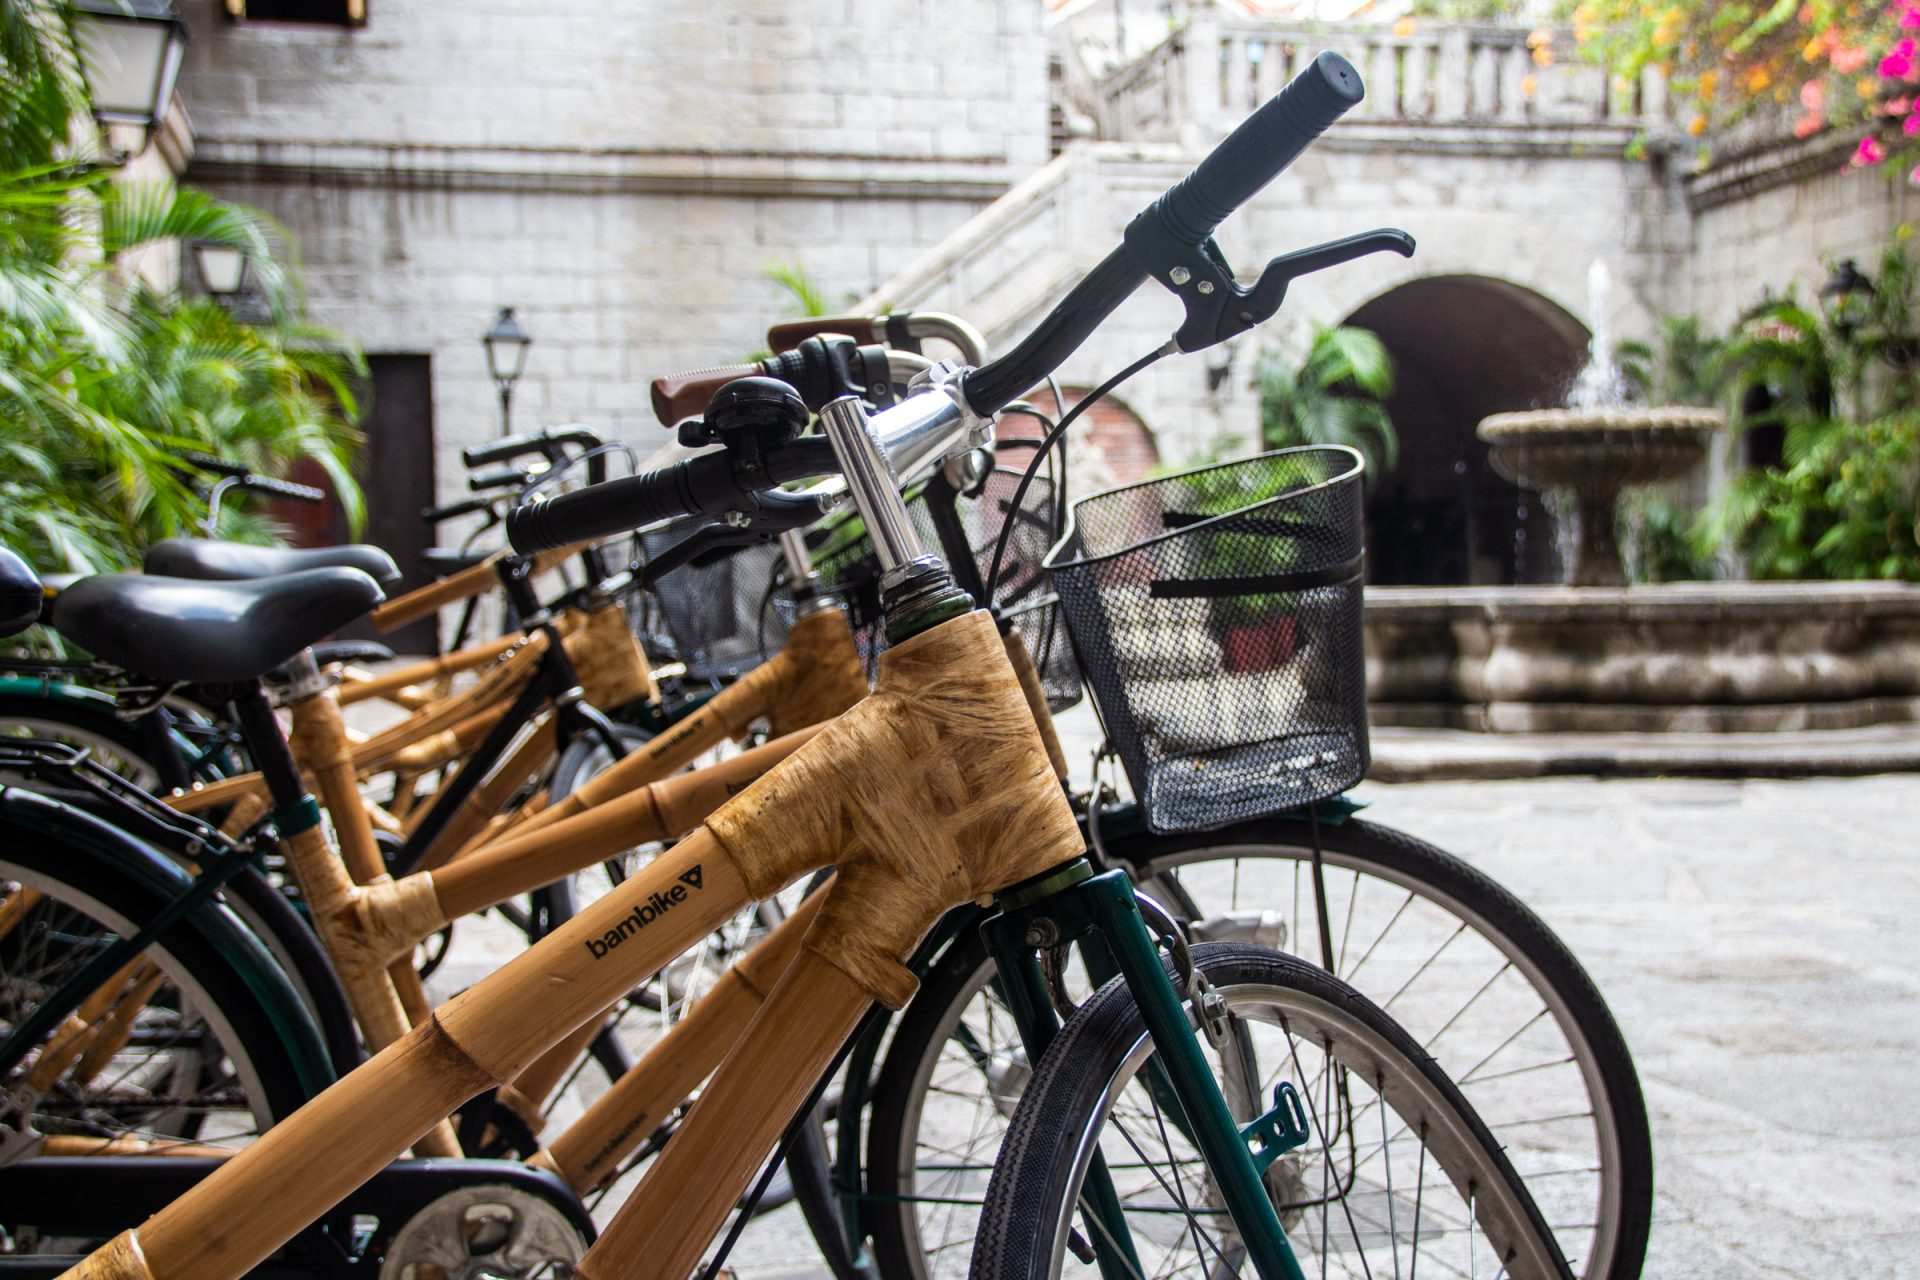 Bamboo Bicycles Parked Near Water Fountain